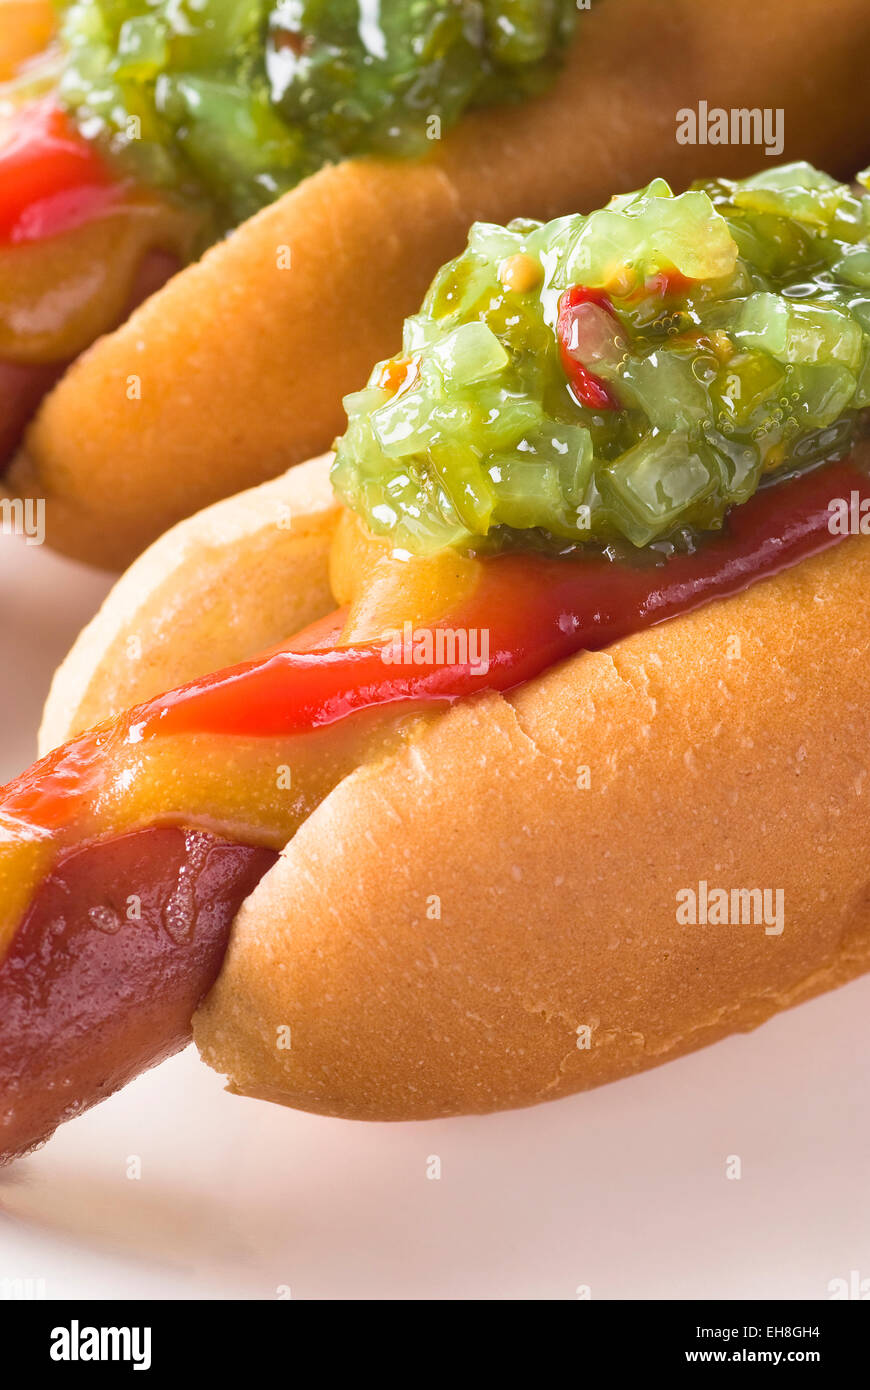 Sweet relish on grilled hot dog. Mustard and ketchup. - Stock Image